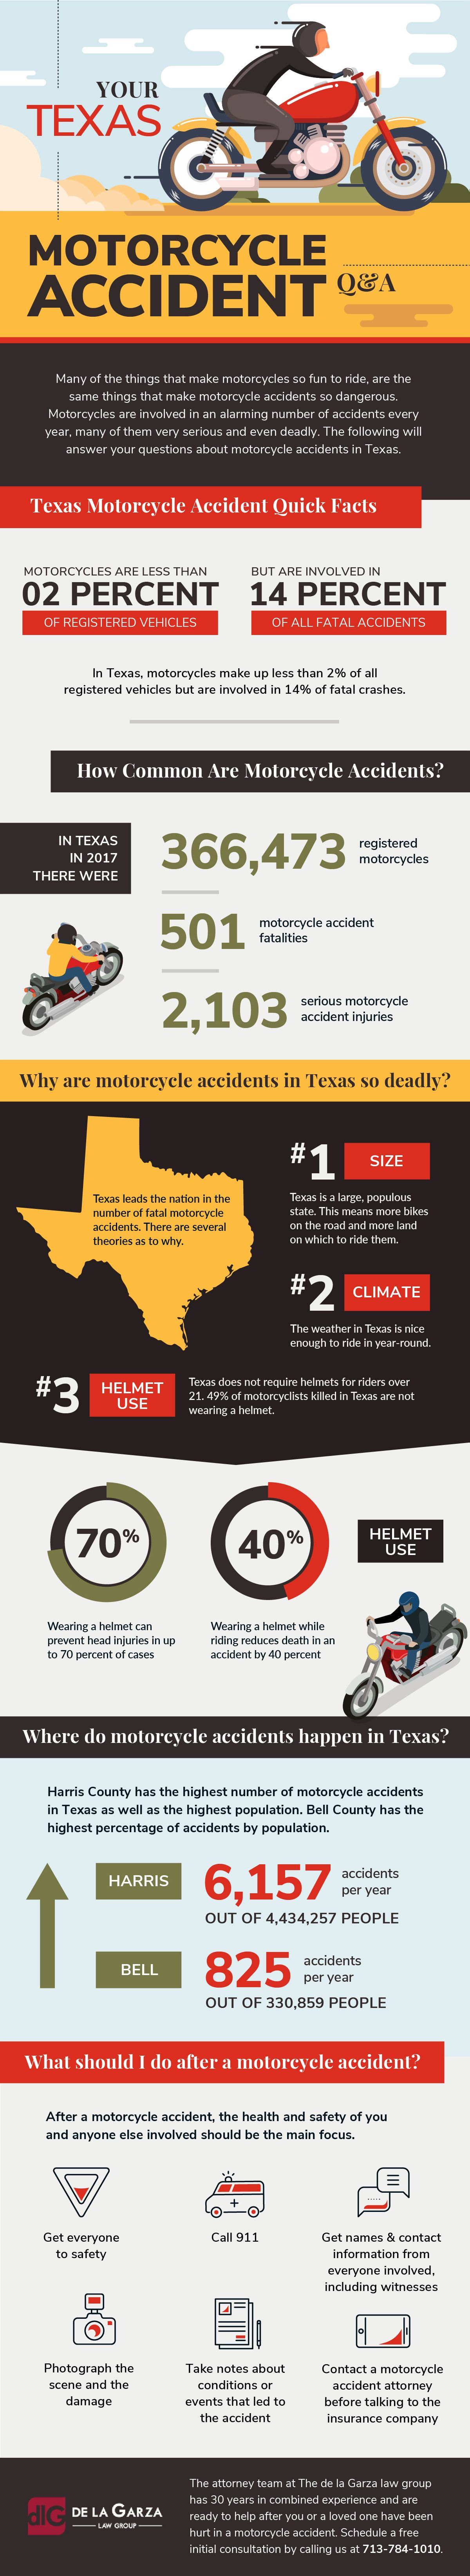 DLG Motorcycle Accident Infographic full